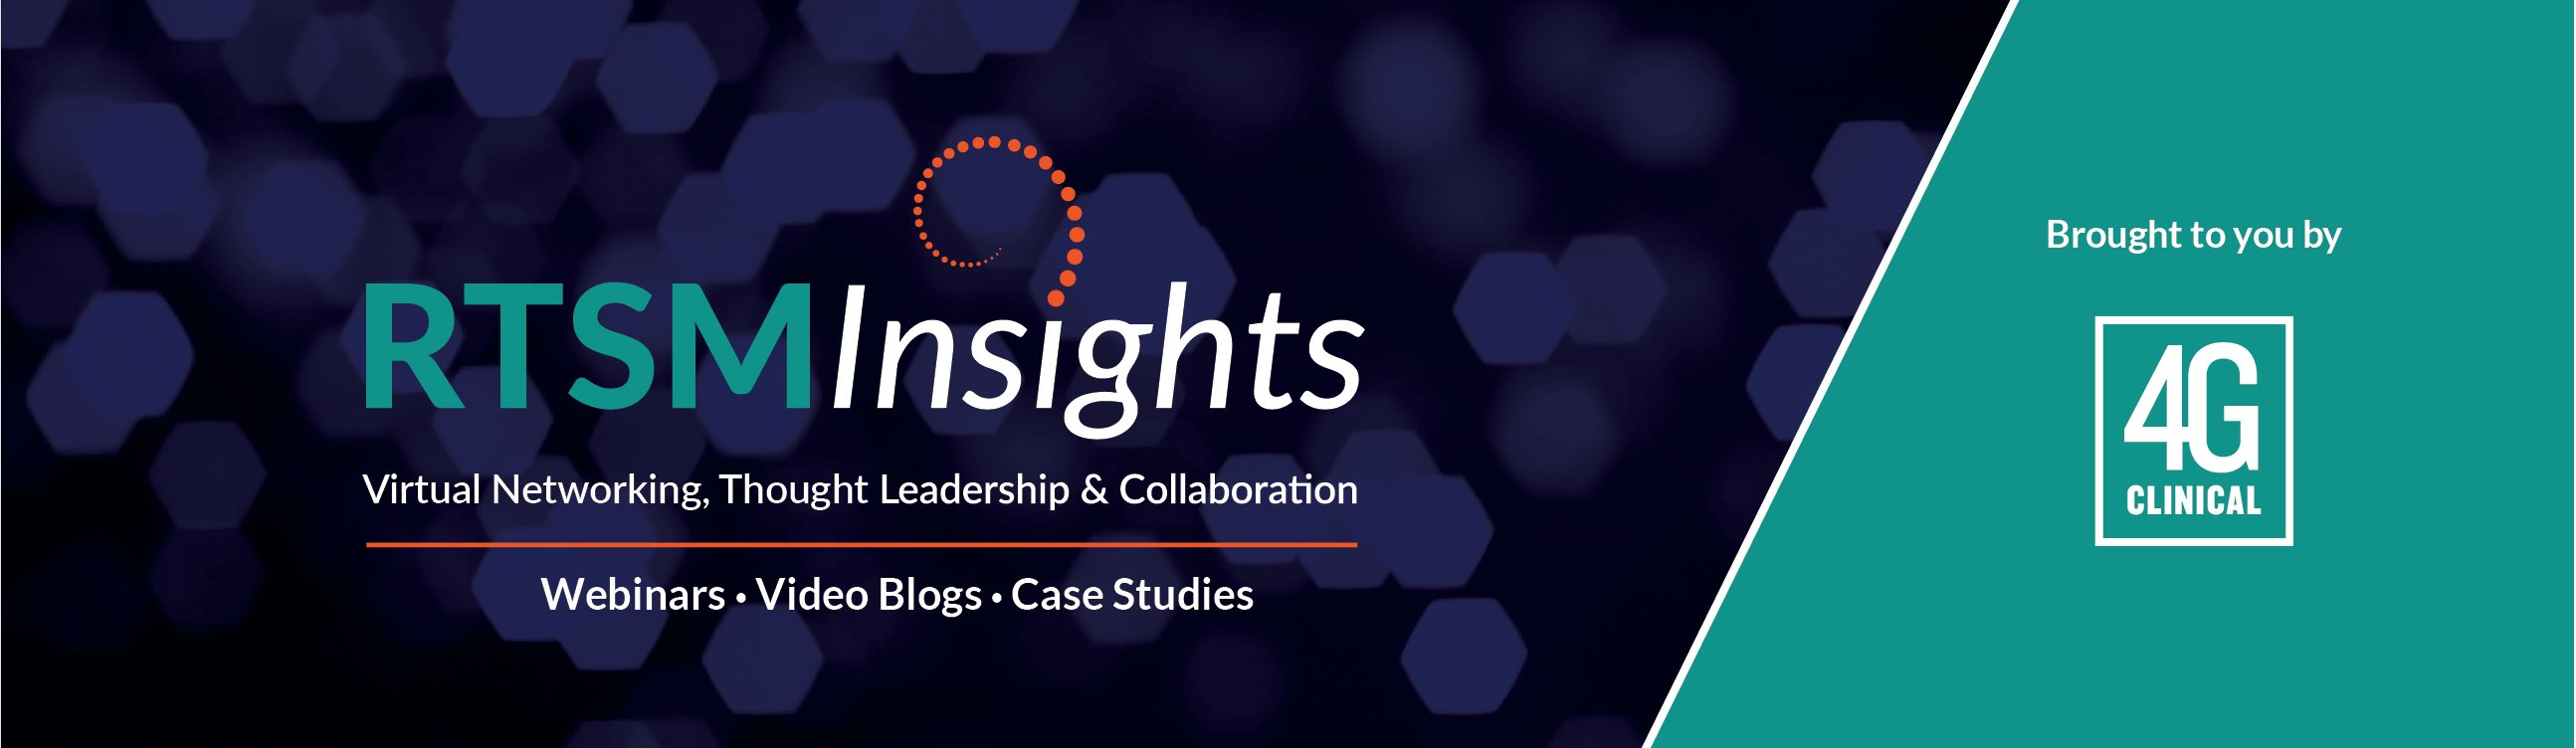 4g-rtsm-insights-virtual-masthead-01-1